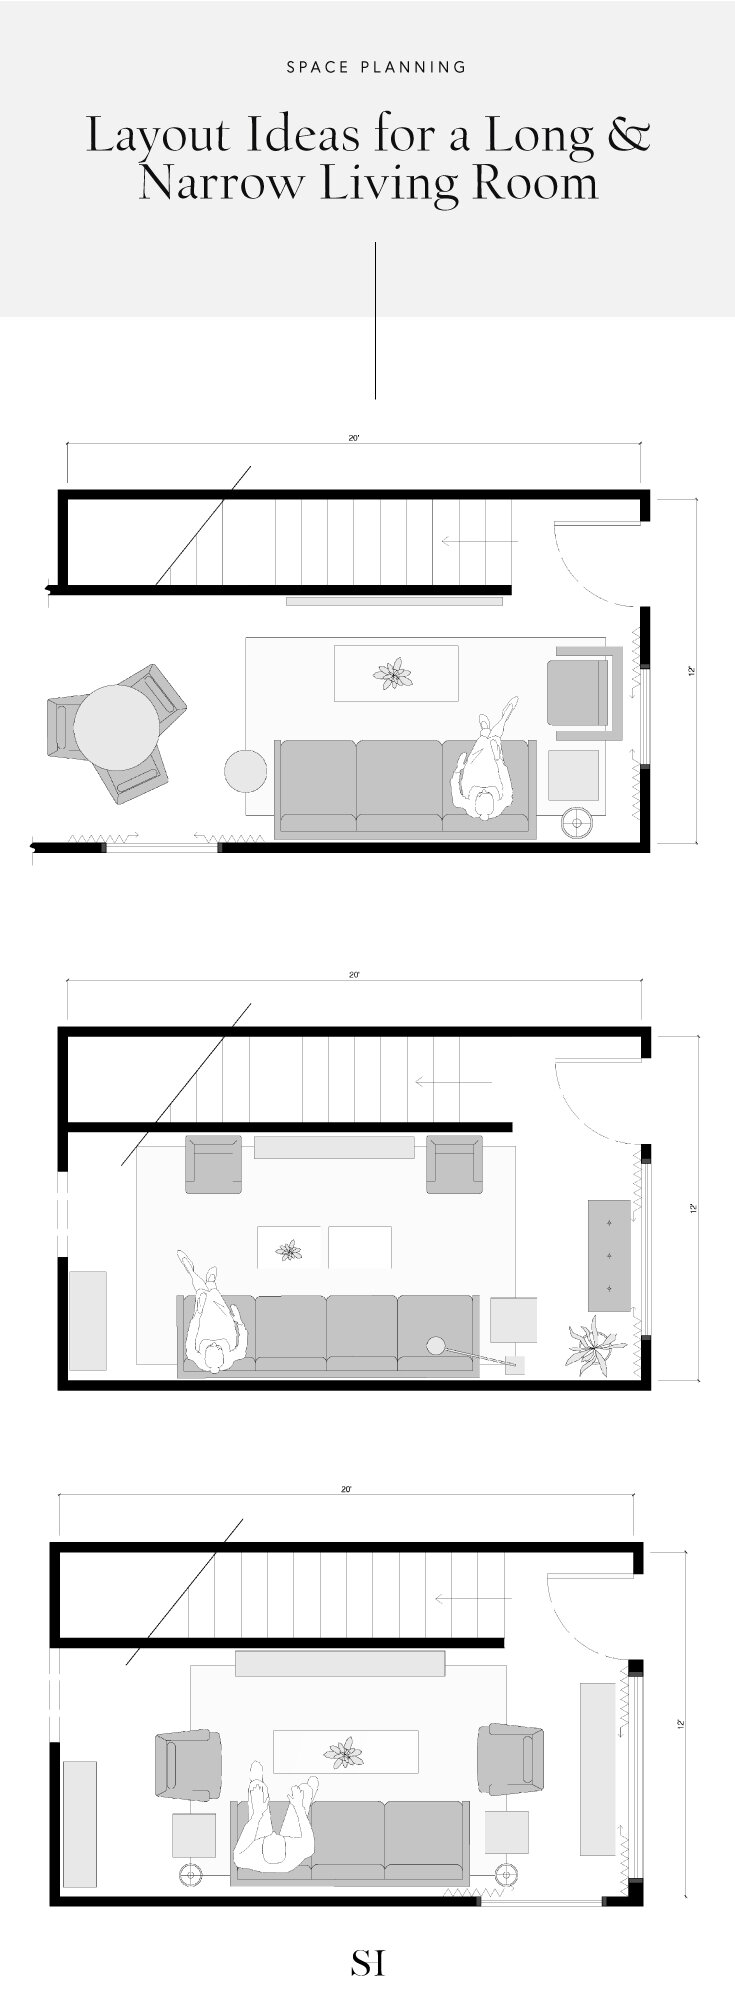 9 Floor Plans & Furniture Layout Ideas For A Long & Narrow Living